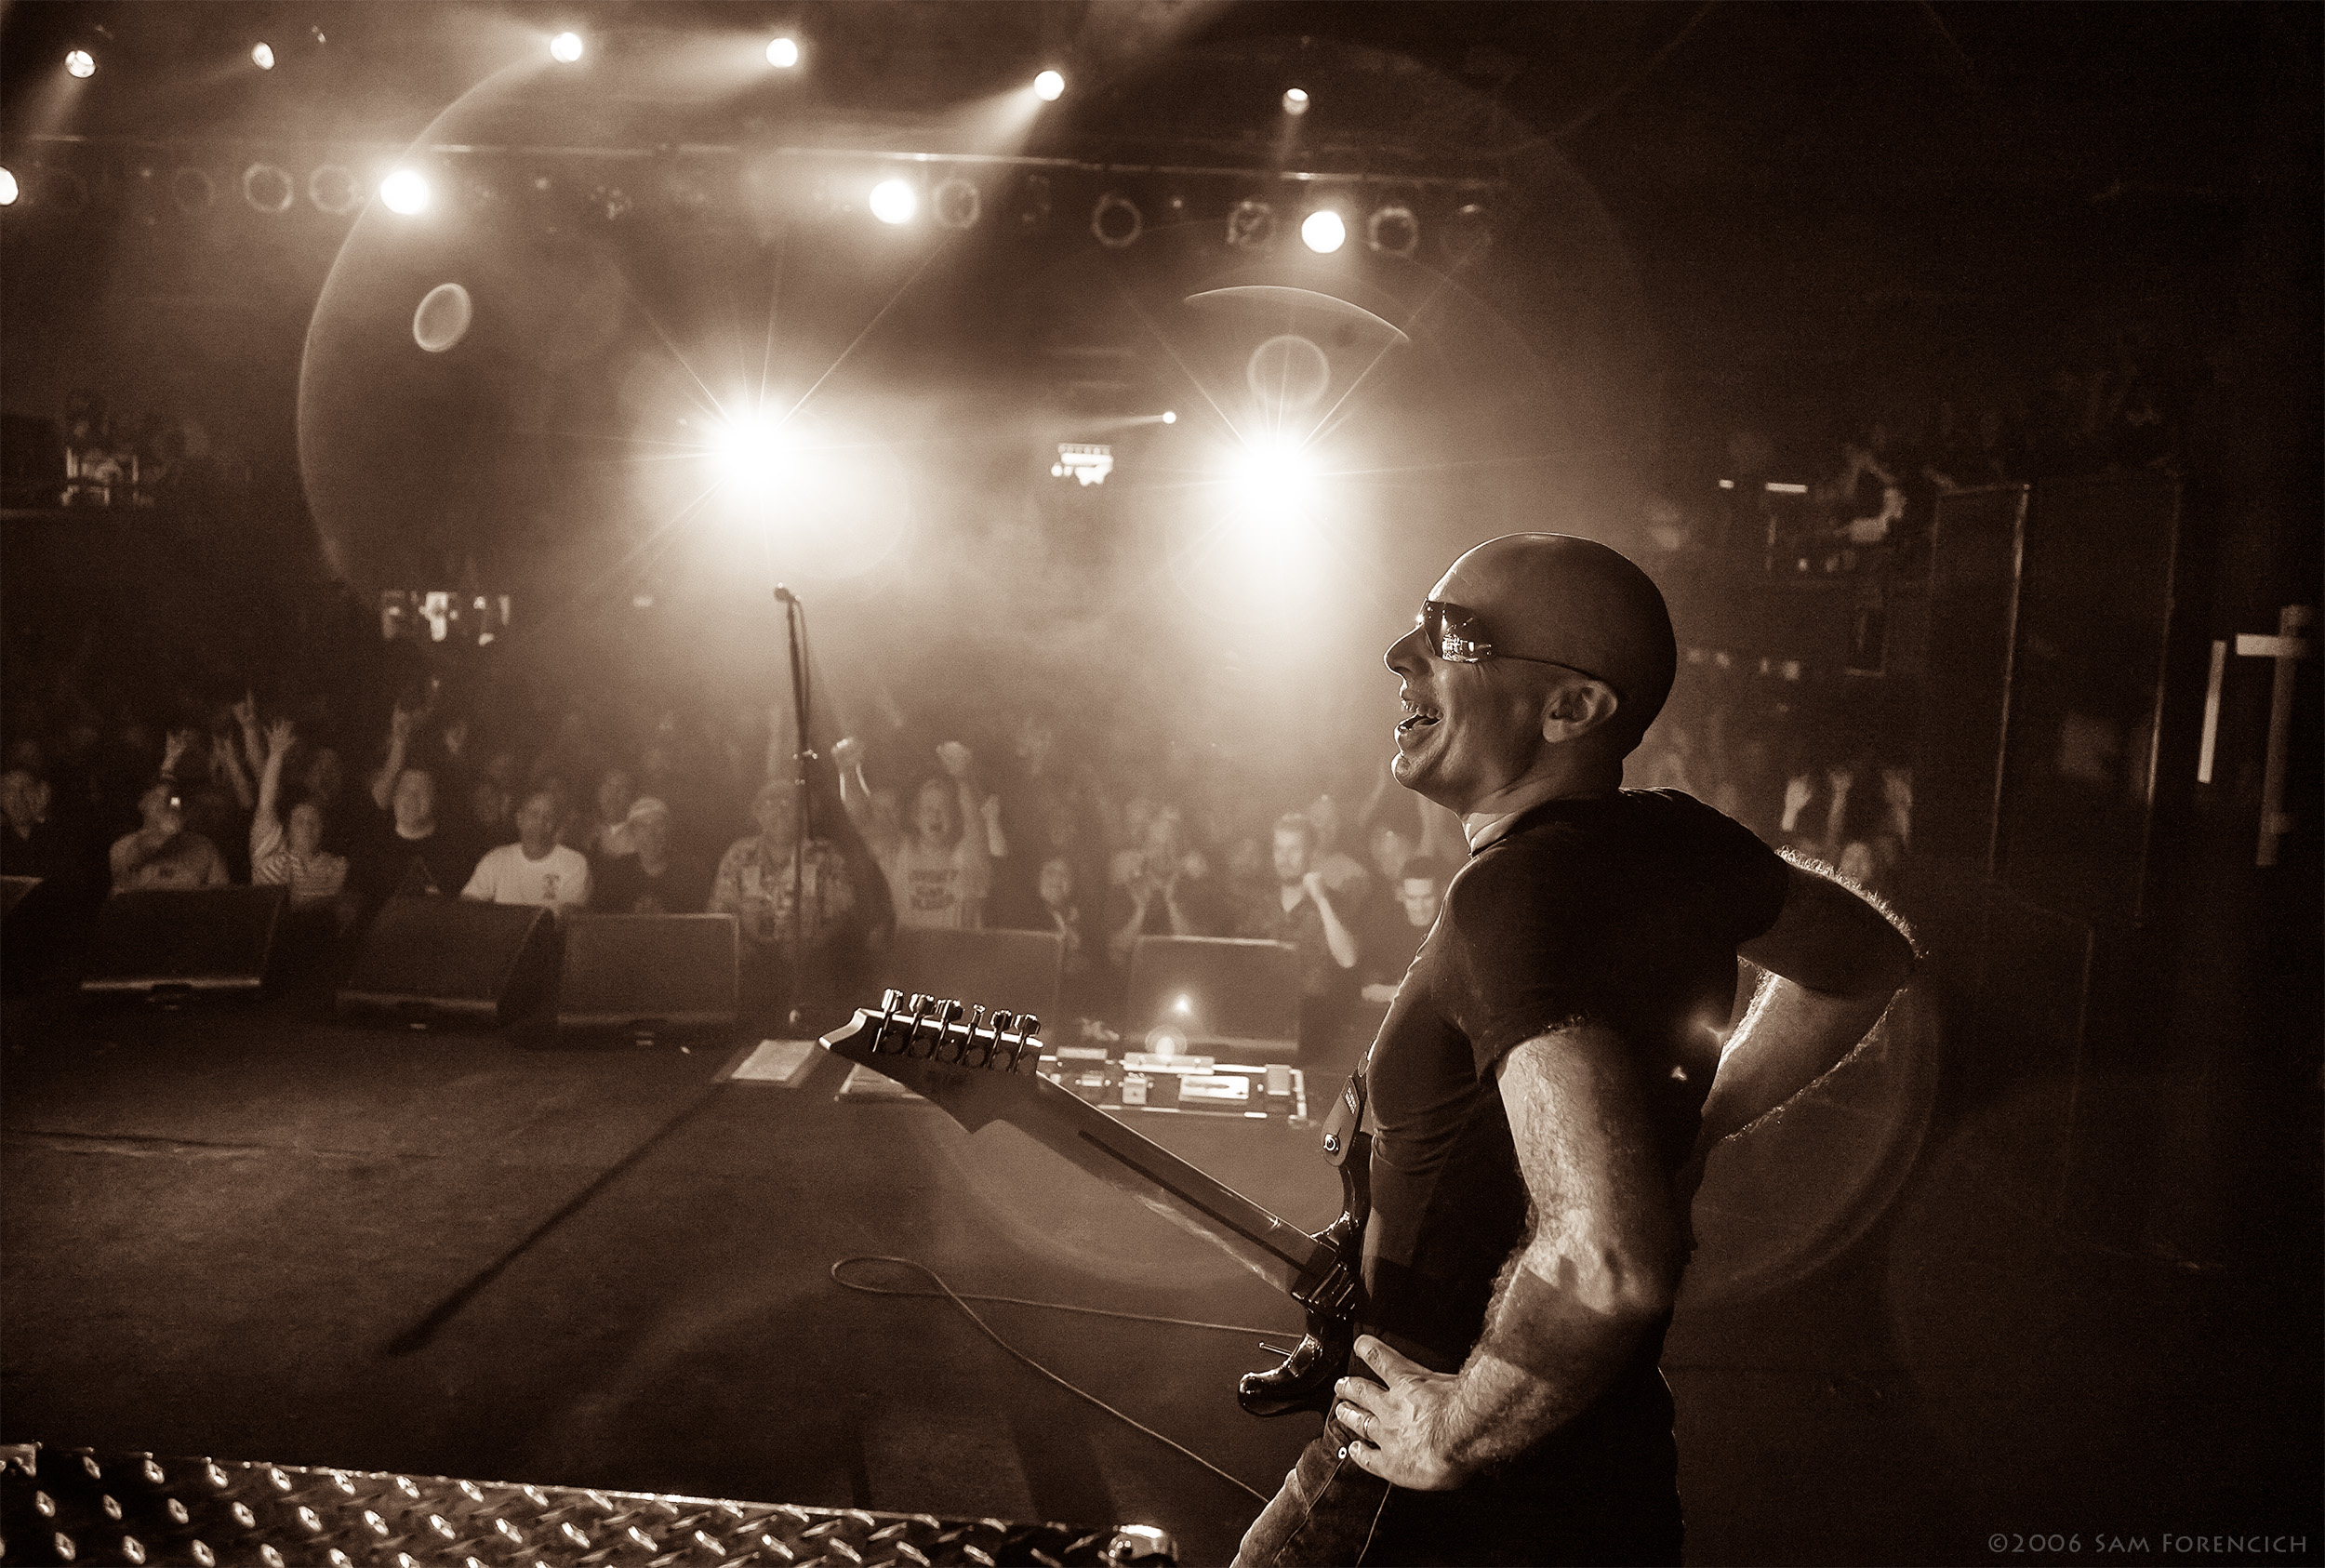 May 2006,Portland, Oregon - Joe Satriani performs at the Roseland Theater - 2006 Super Colossal Tour ©2006 Sam Forencich